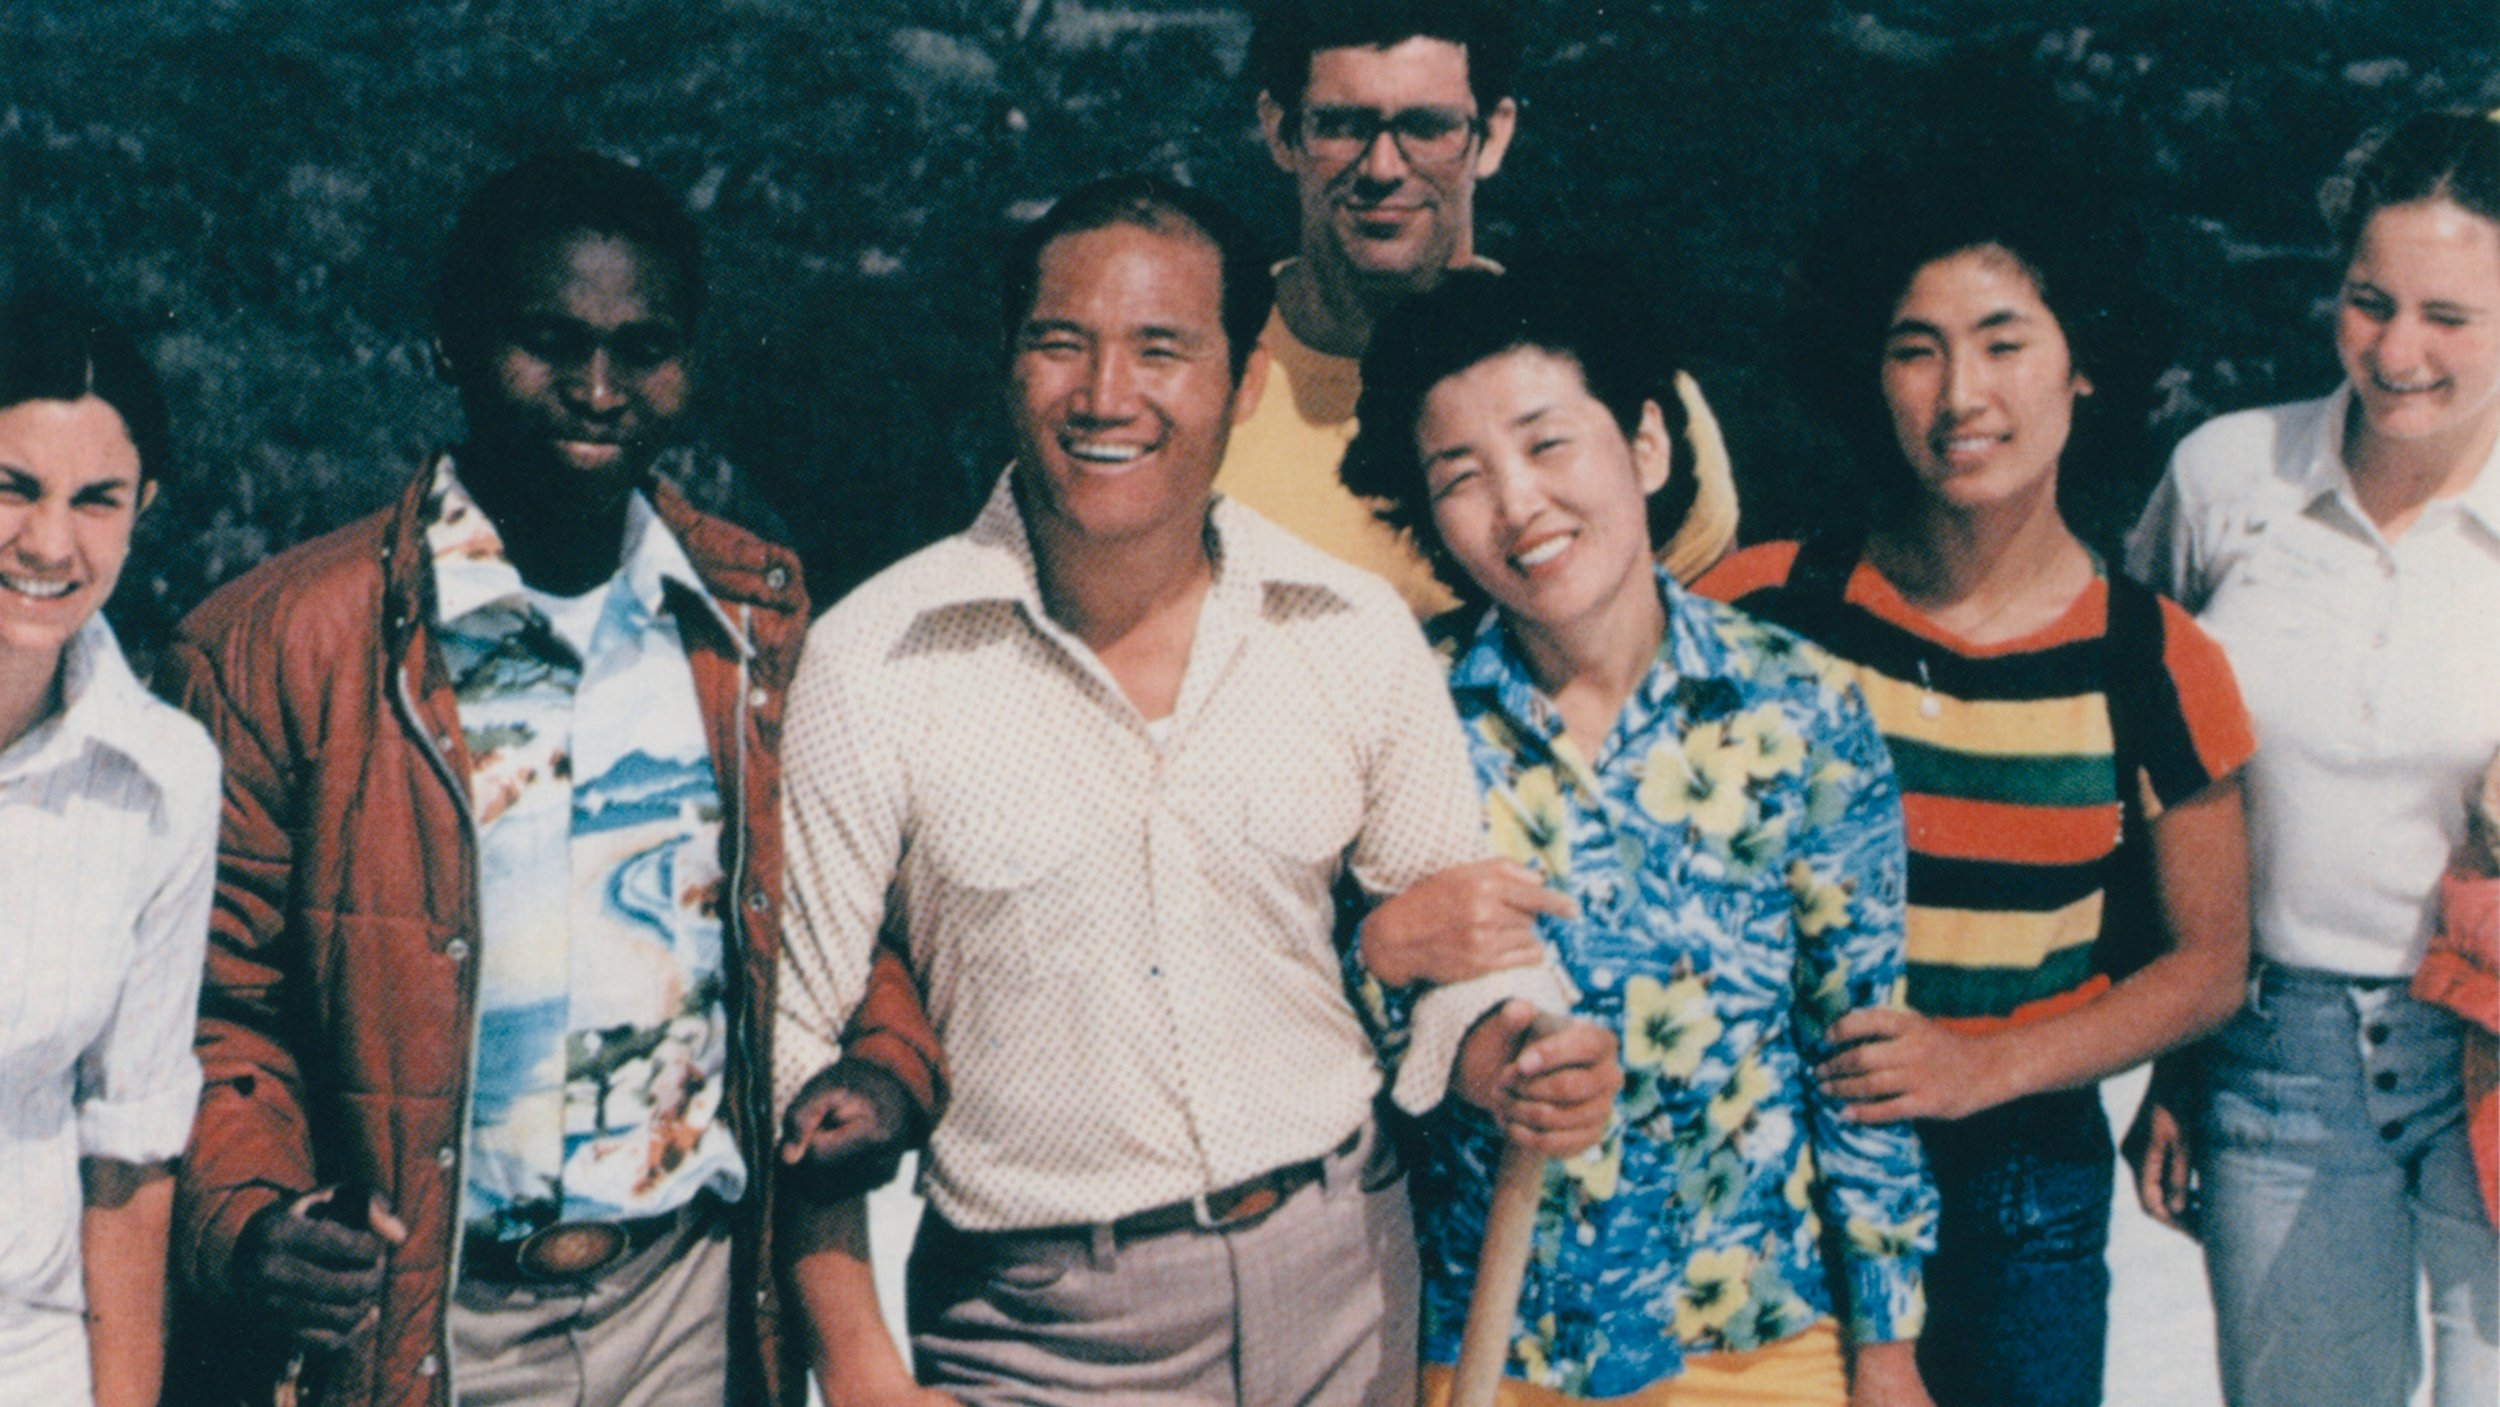 Tiger Park and Mrs. Park with members in Colorado in 1981.